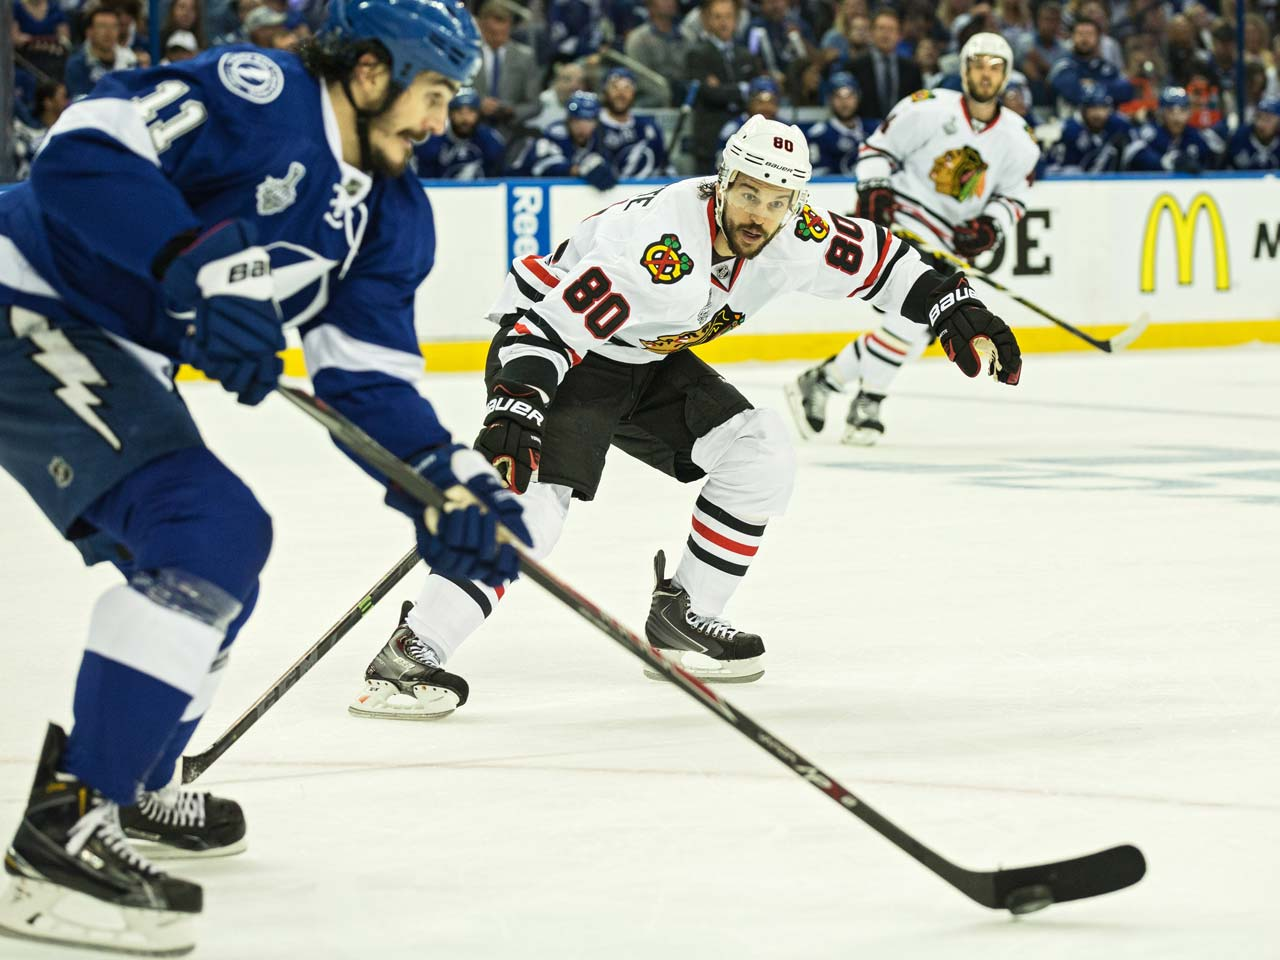 Antoine Vermette (80) of the Blackhawks extends his stick to steal the puck.